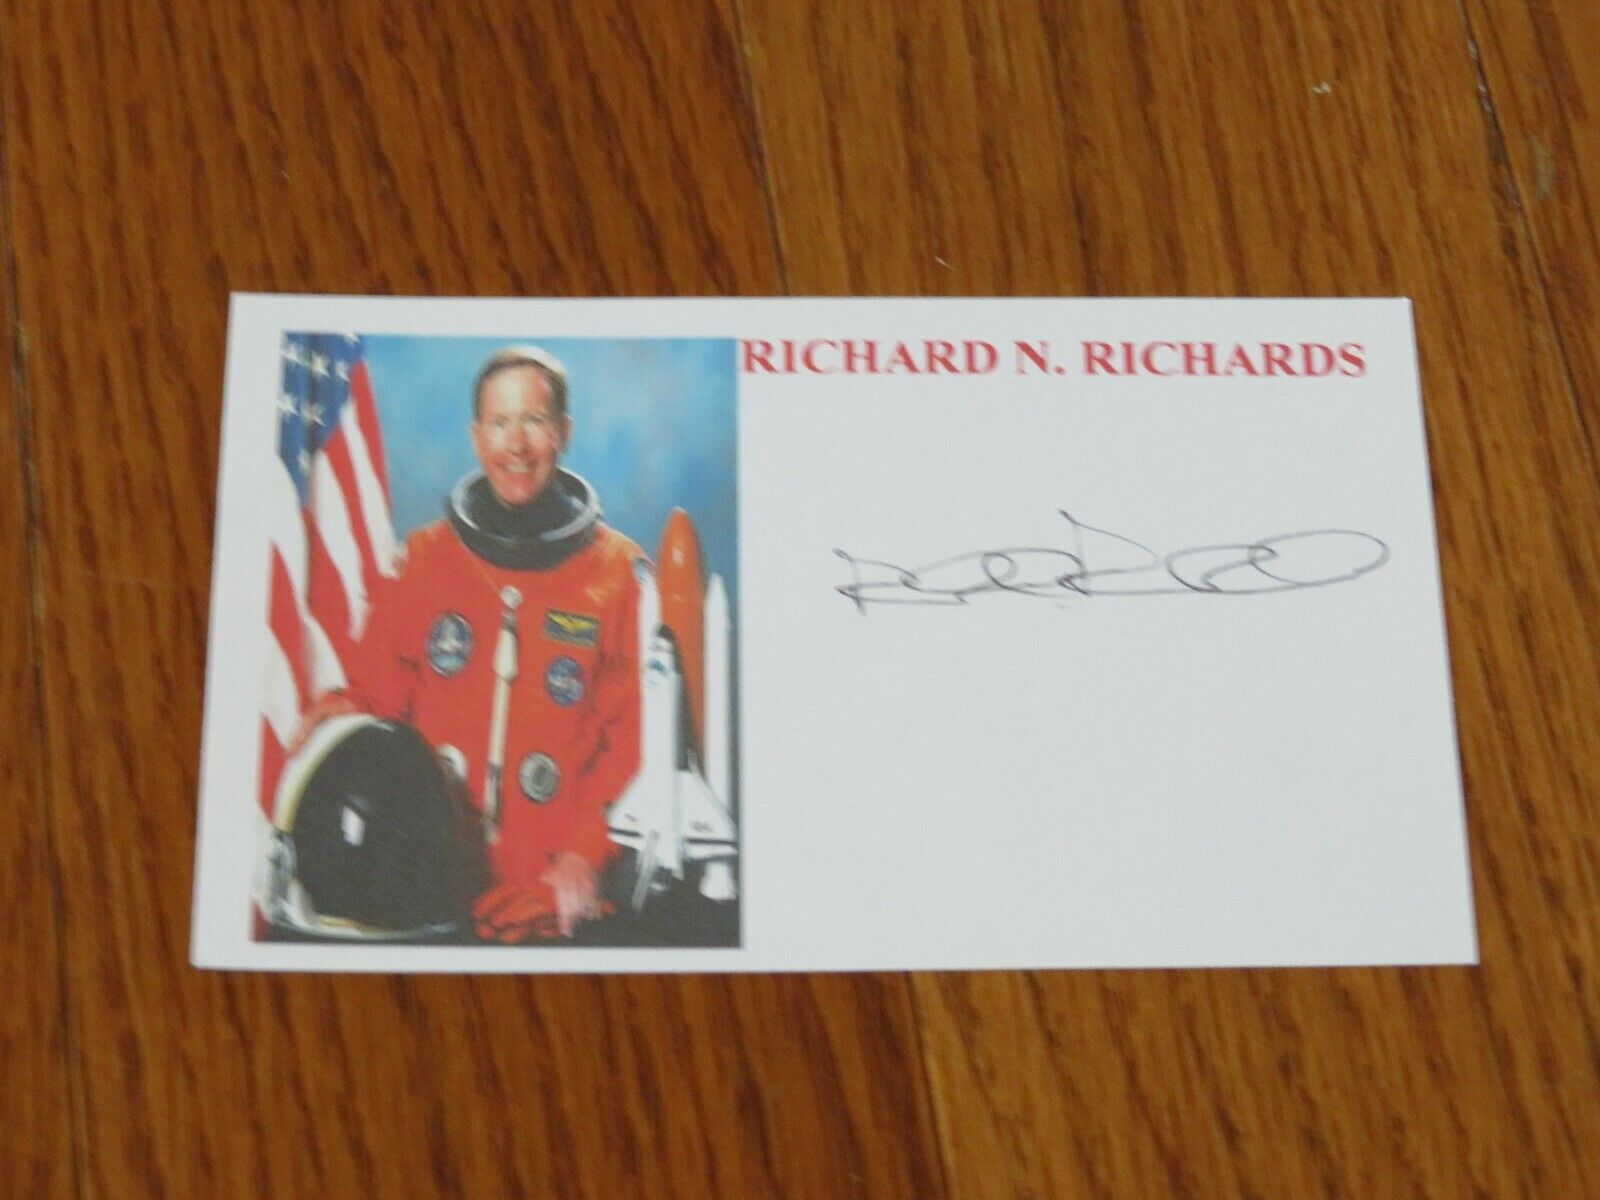 s l1600 - Richard Richards Autographed 3x5 Card Hand Signed Space NASA Astronaut